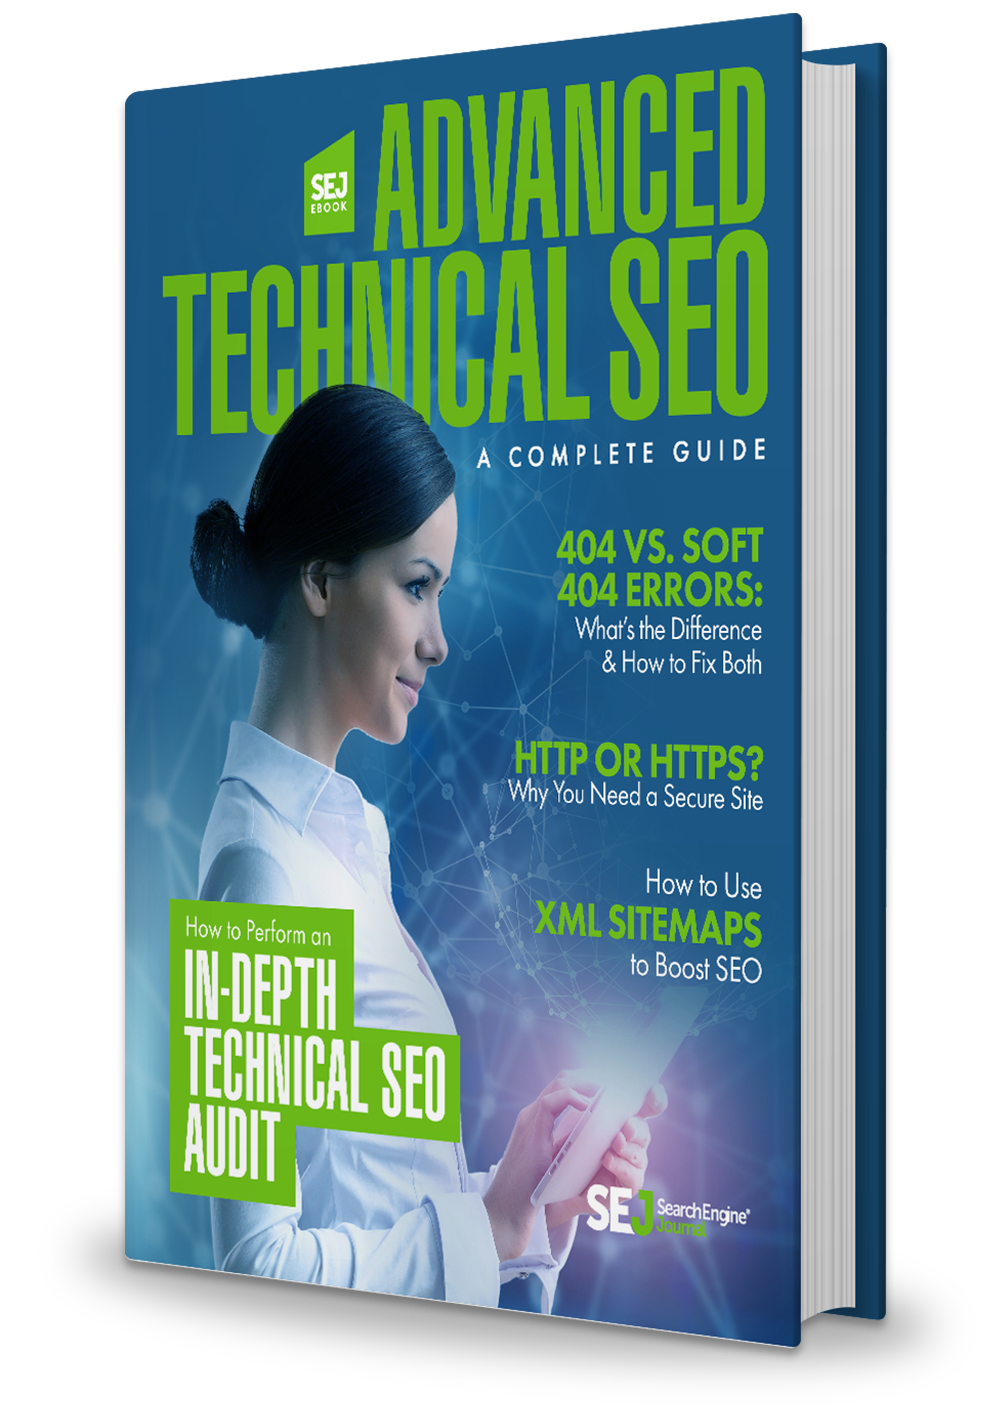 Why is technical SEO important?